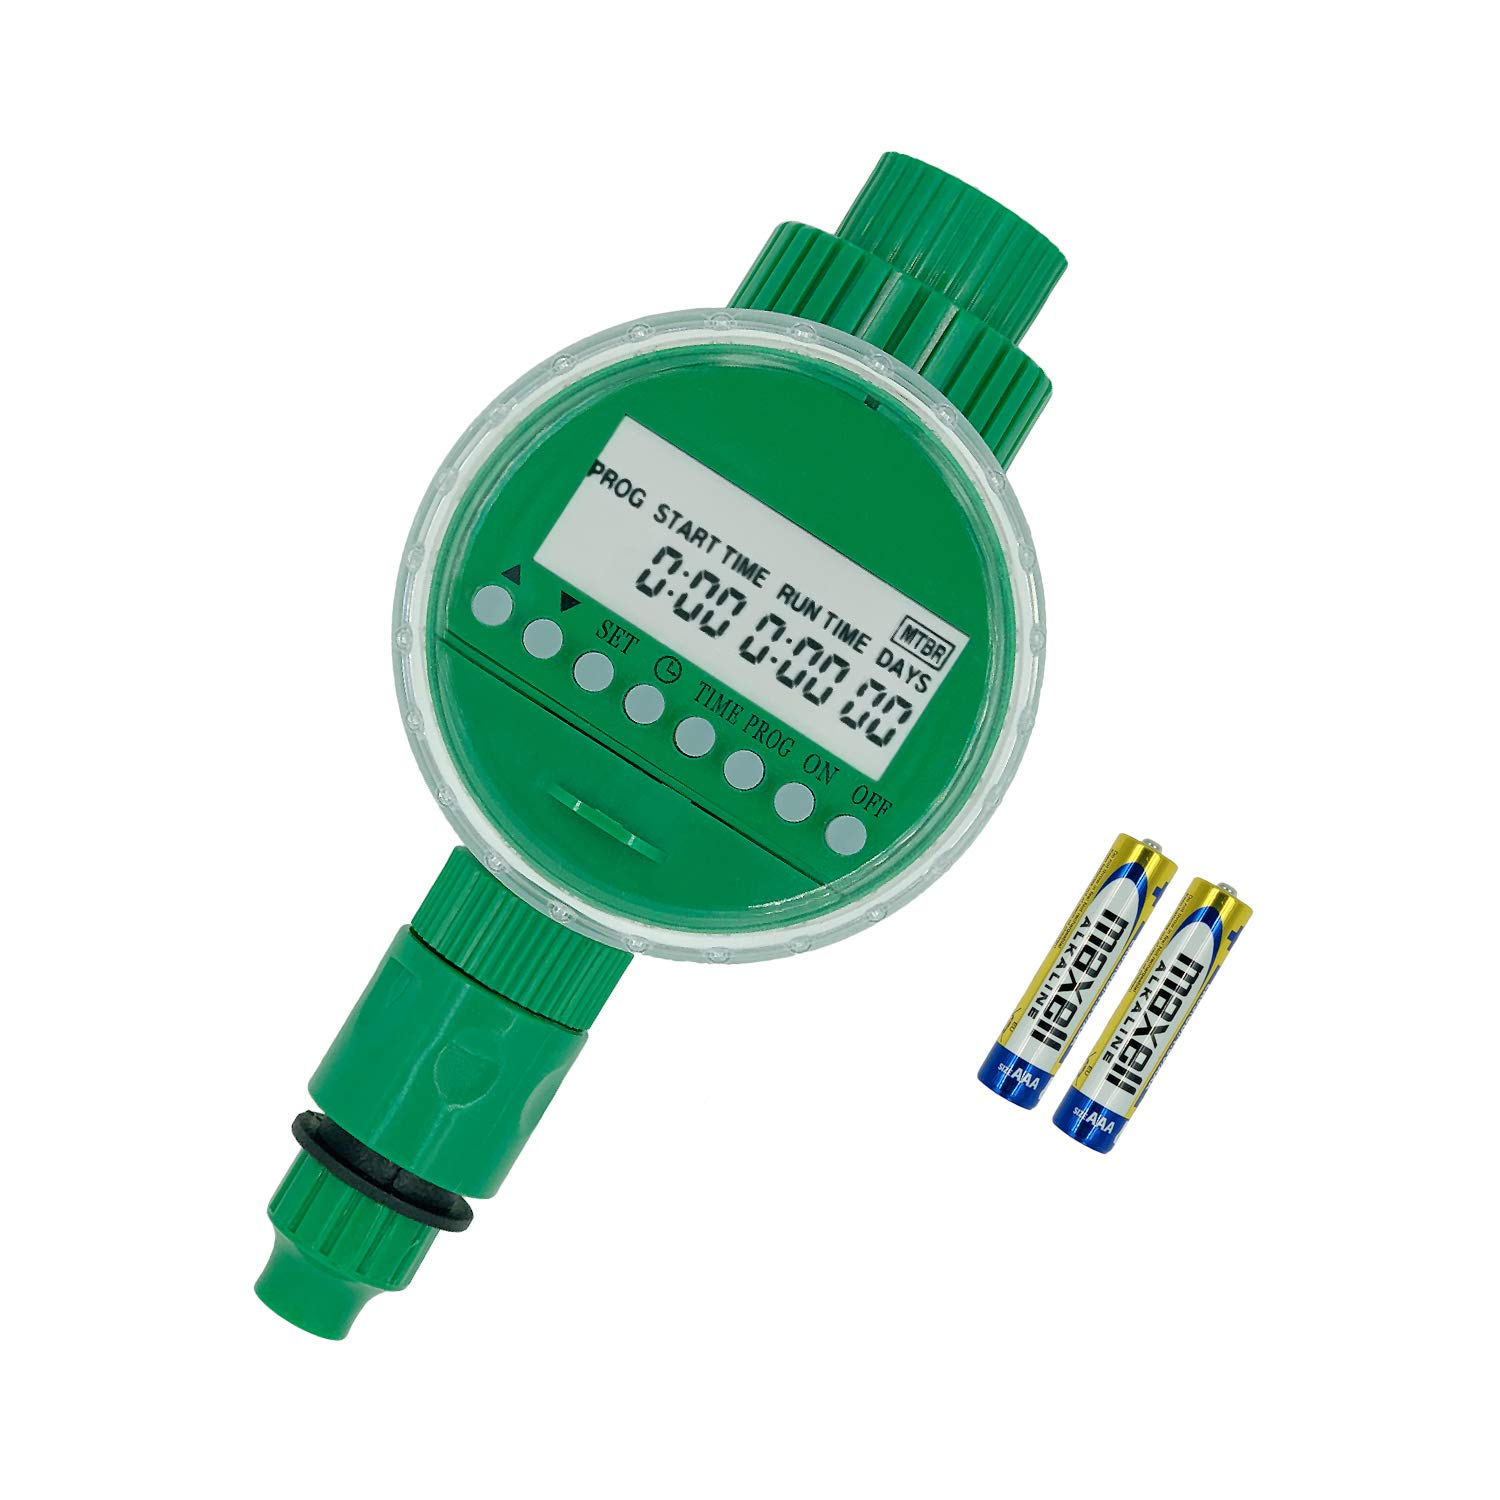 Amble Hose Faucet Timer, Programmable Sprinkler Water Timer with Battery Included - Automatic Irrigation Waterproof for Garden Lawn and Outdoor